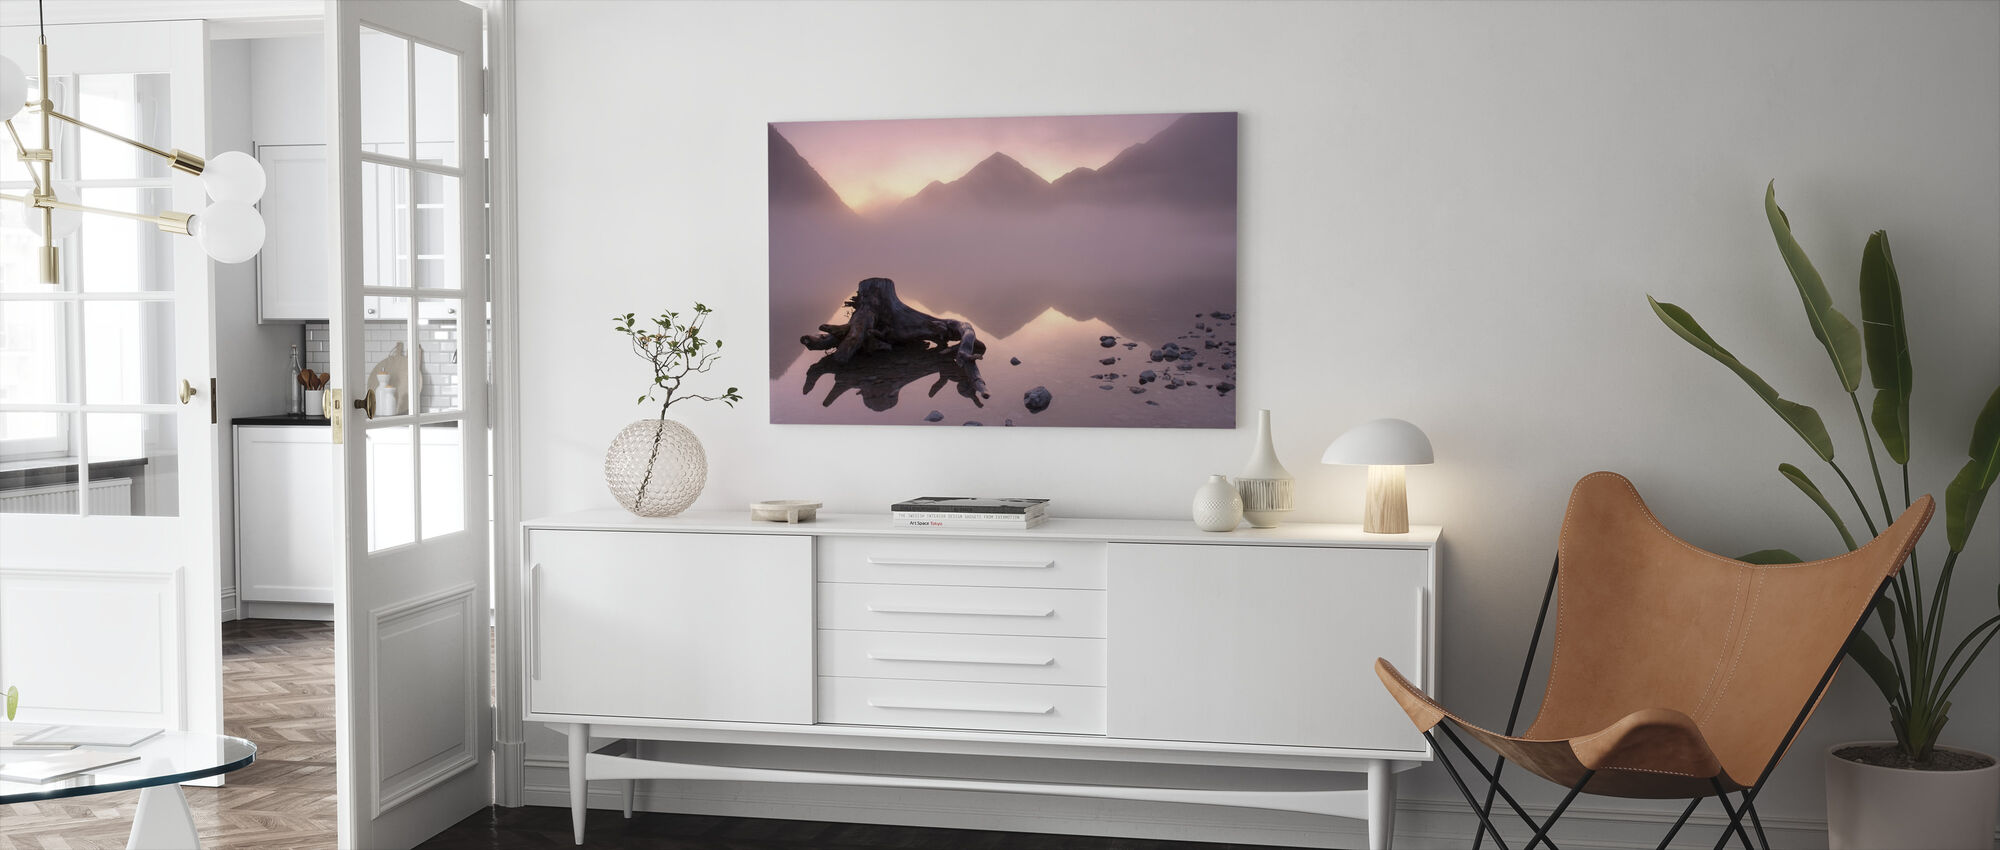 Misty Morning at the Lake - Canvas print - Living Room